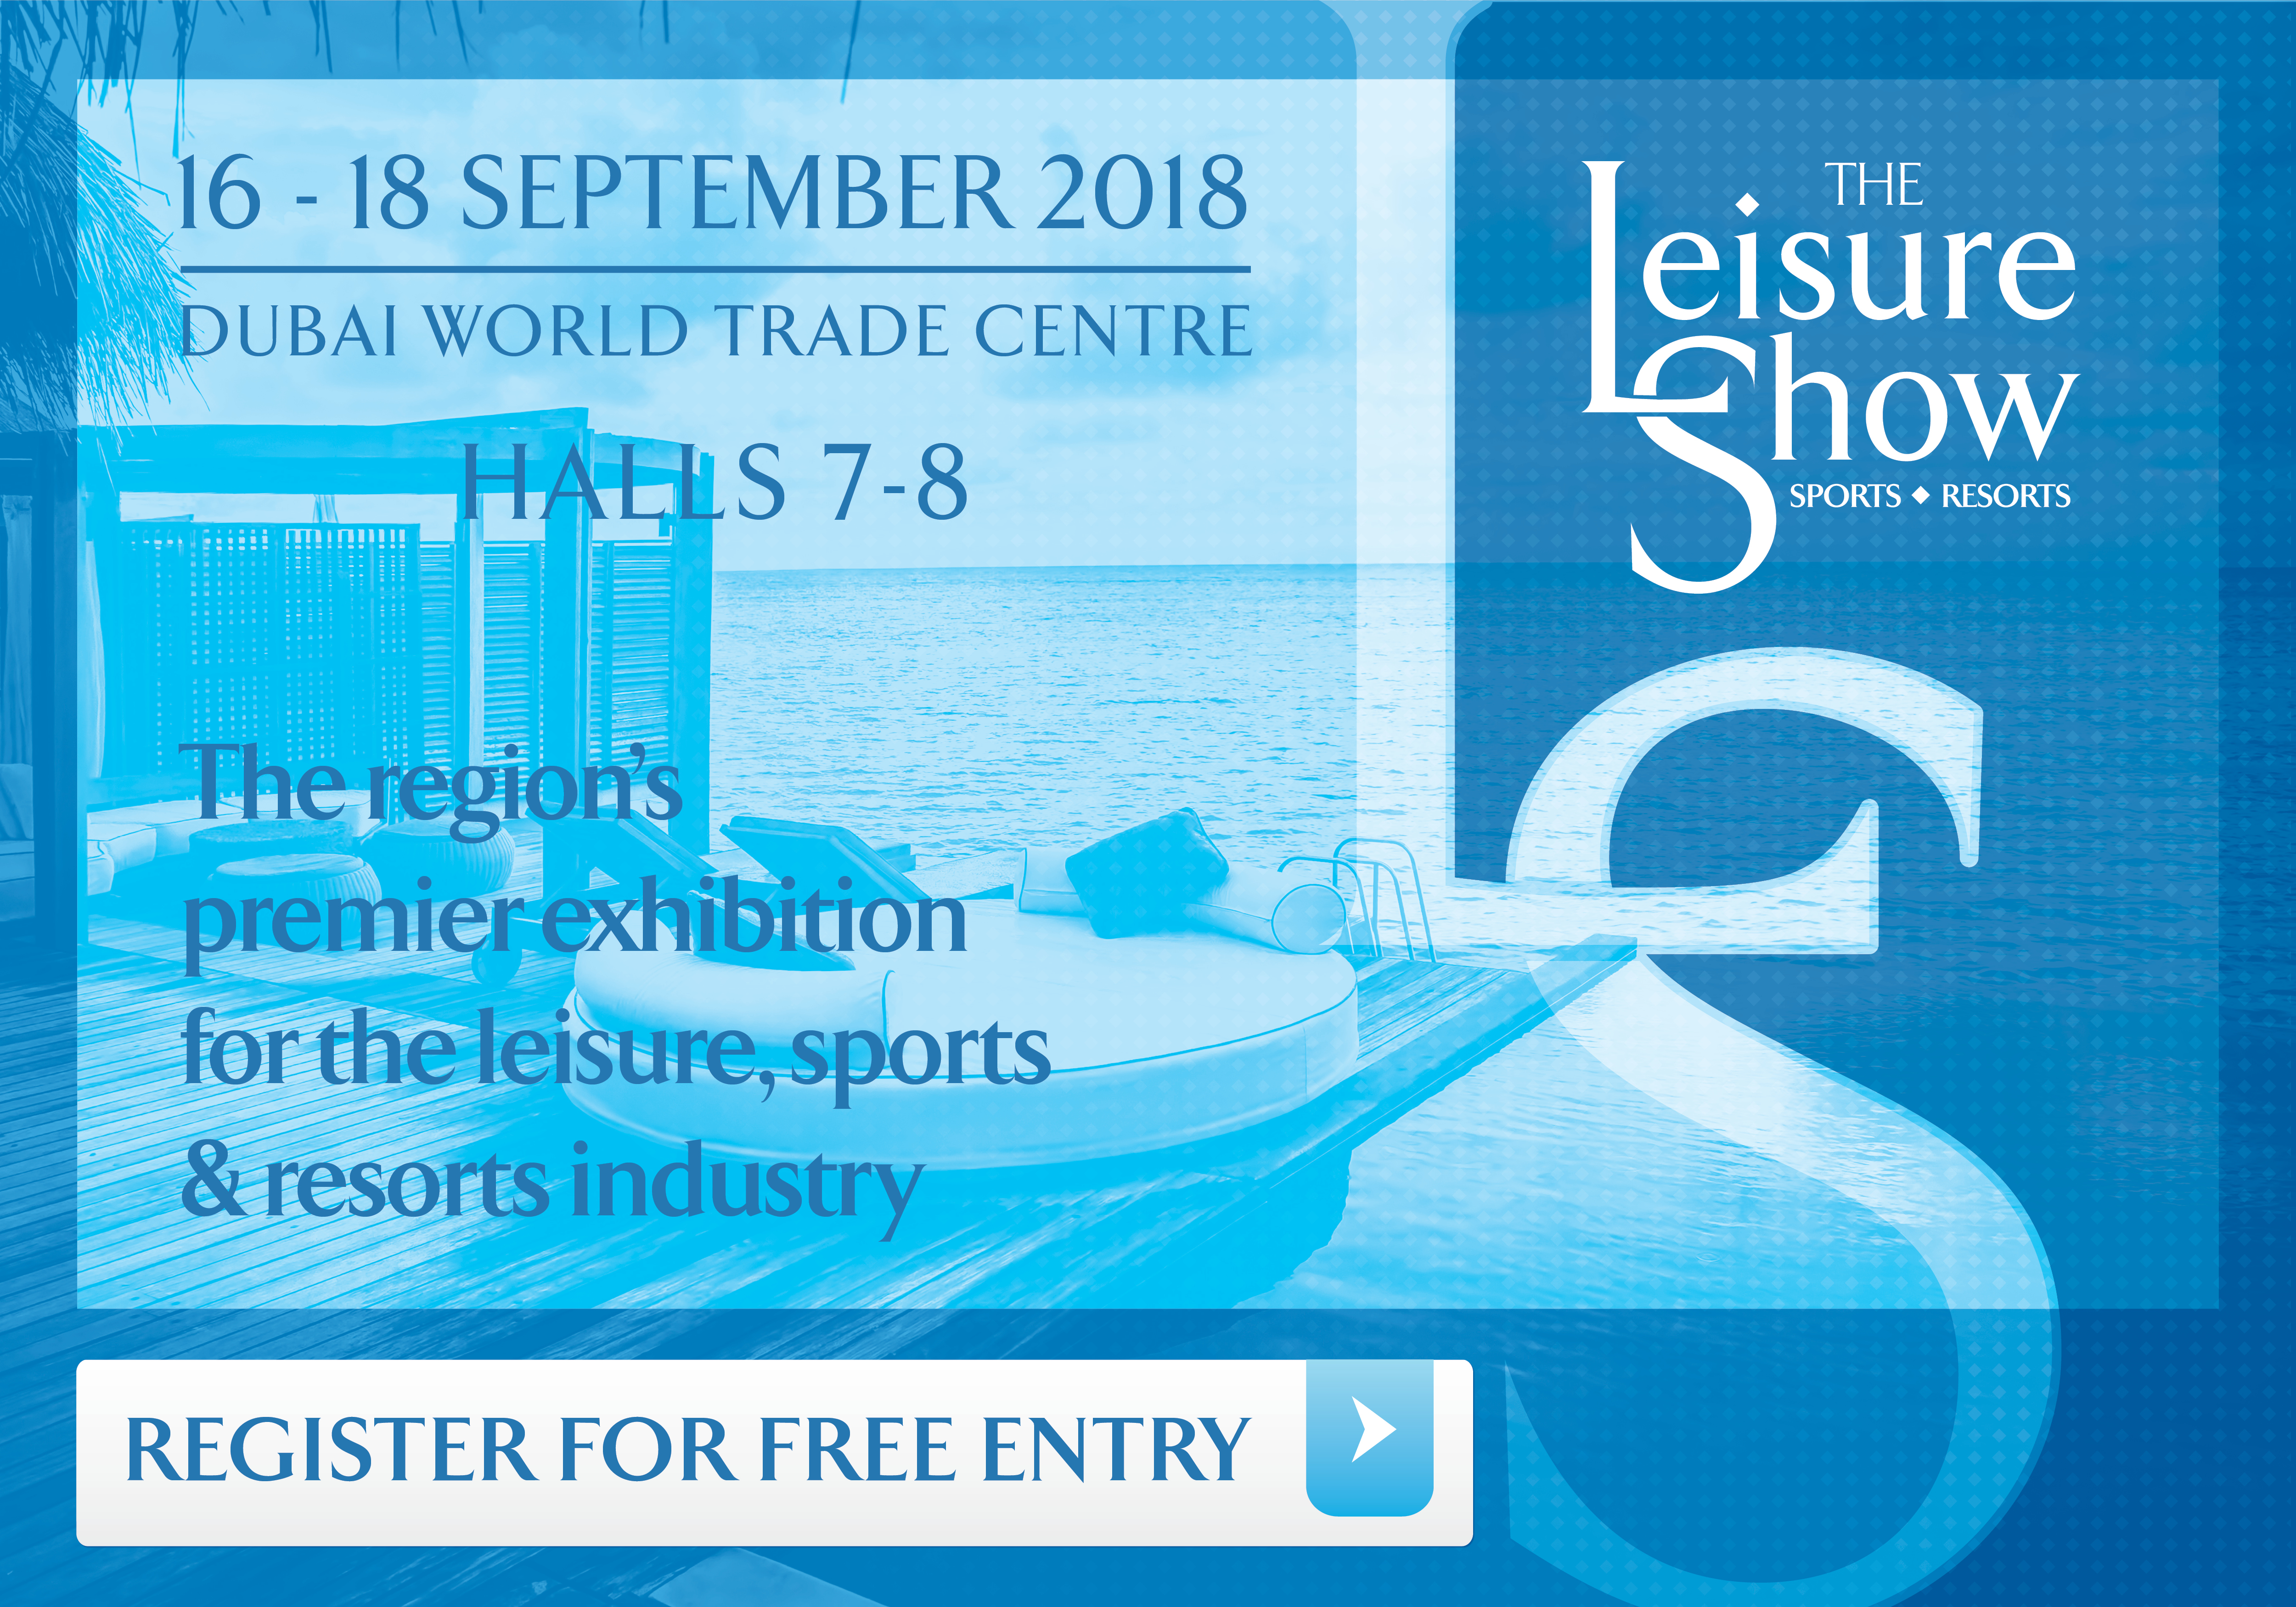 The Leisure Show – The premier exhibition for the leisure, sports & resorts industry in Middle East & Africa returns in September 2018 for its sixth edition